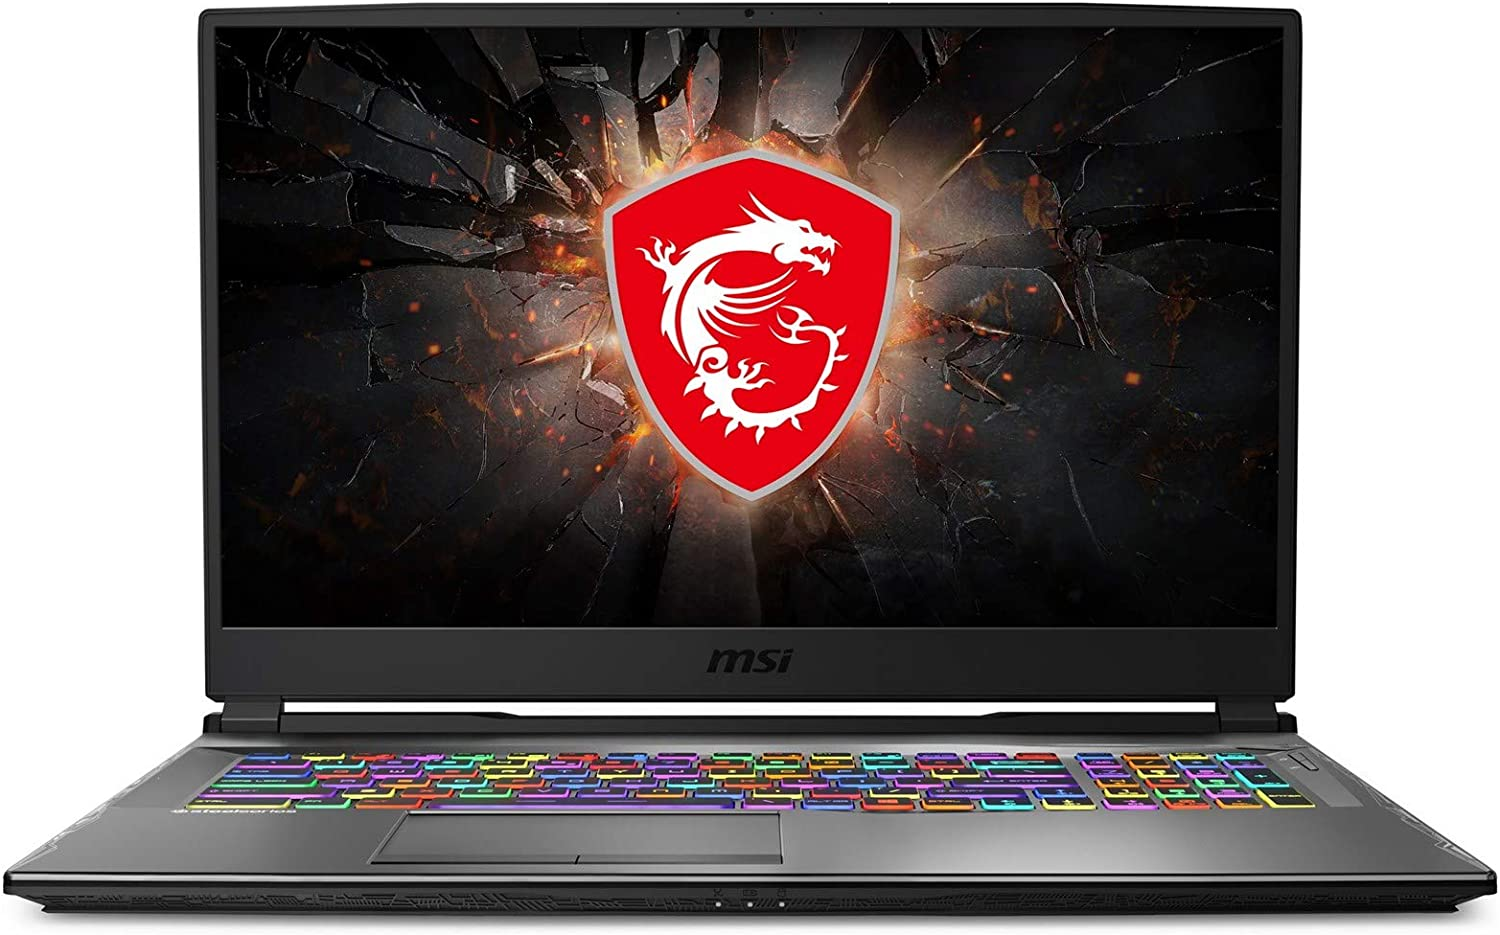 "CUK MSI GP75 Leopard Gaming Laptop (Intel Core i7-10750H, 64GB RAM, 2TB NVMe SSD + 2TB HDD, NVIDIA GeForce RTX 2070 8GB, 17.3"" Full HD 240Hz 3ms, Windows 10 Home) Gamer Notebook Computer"